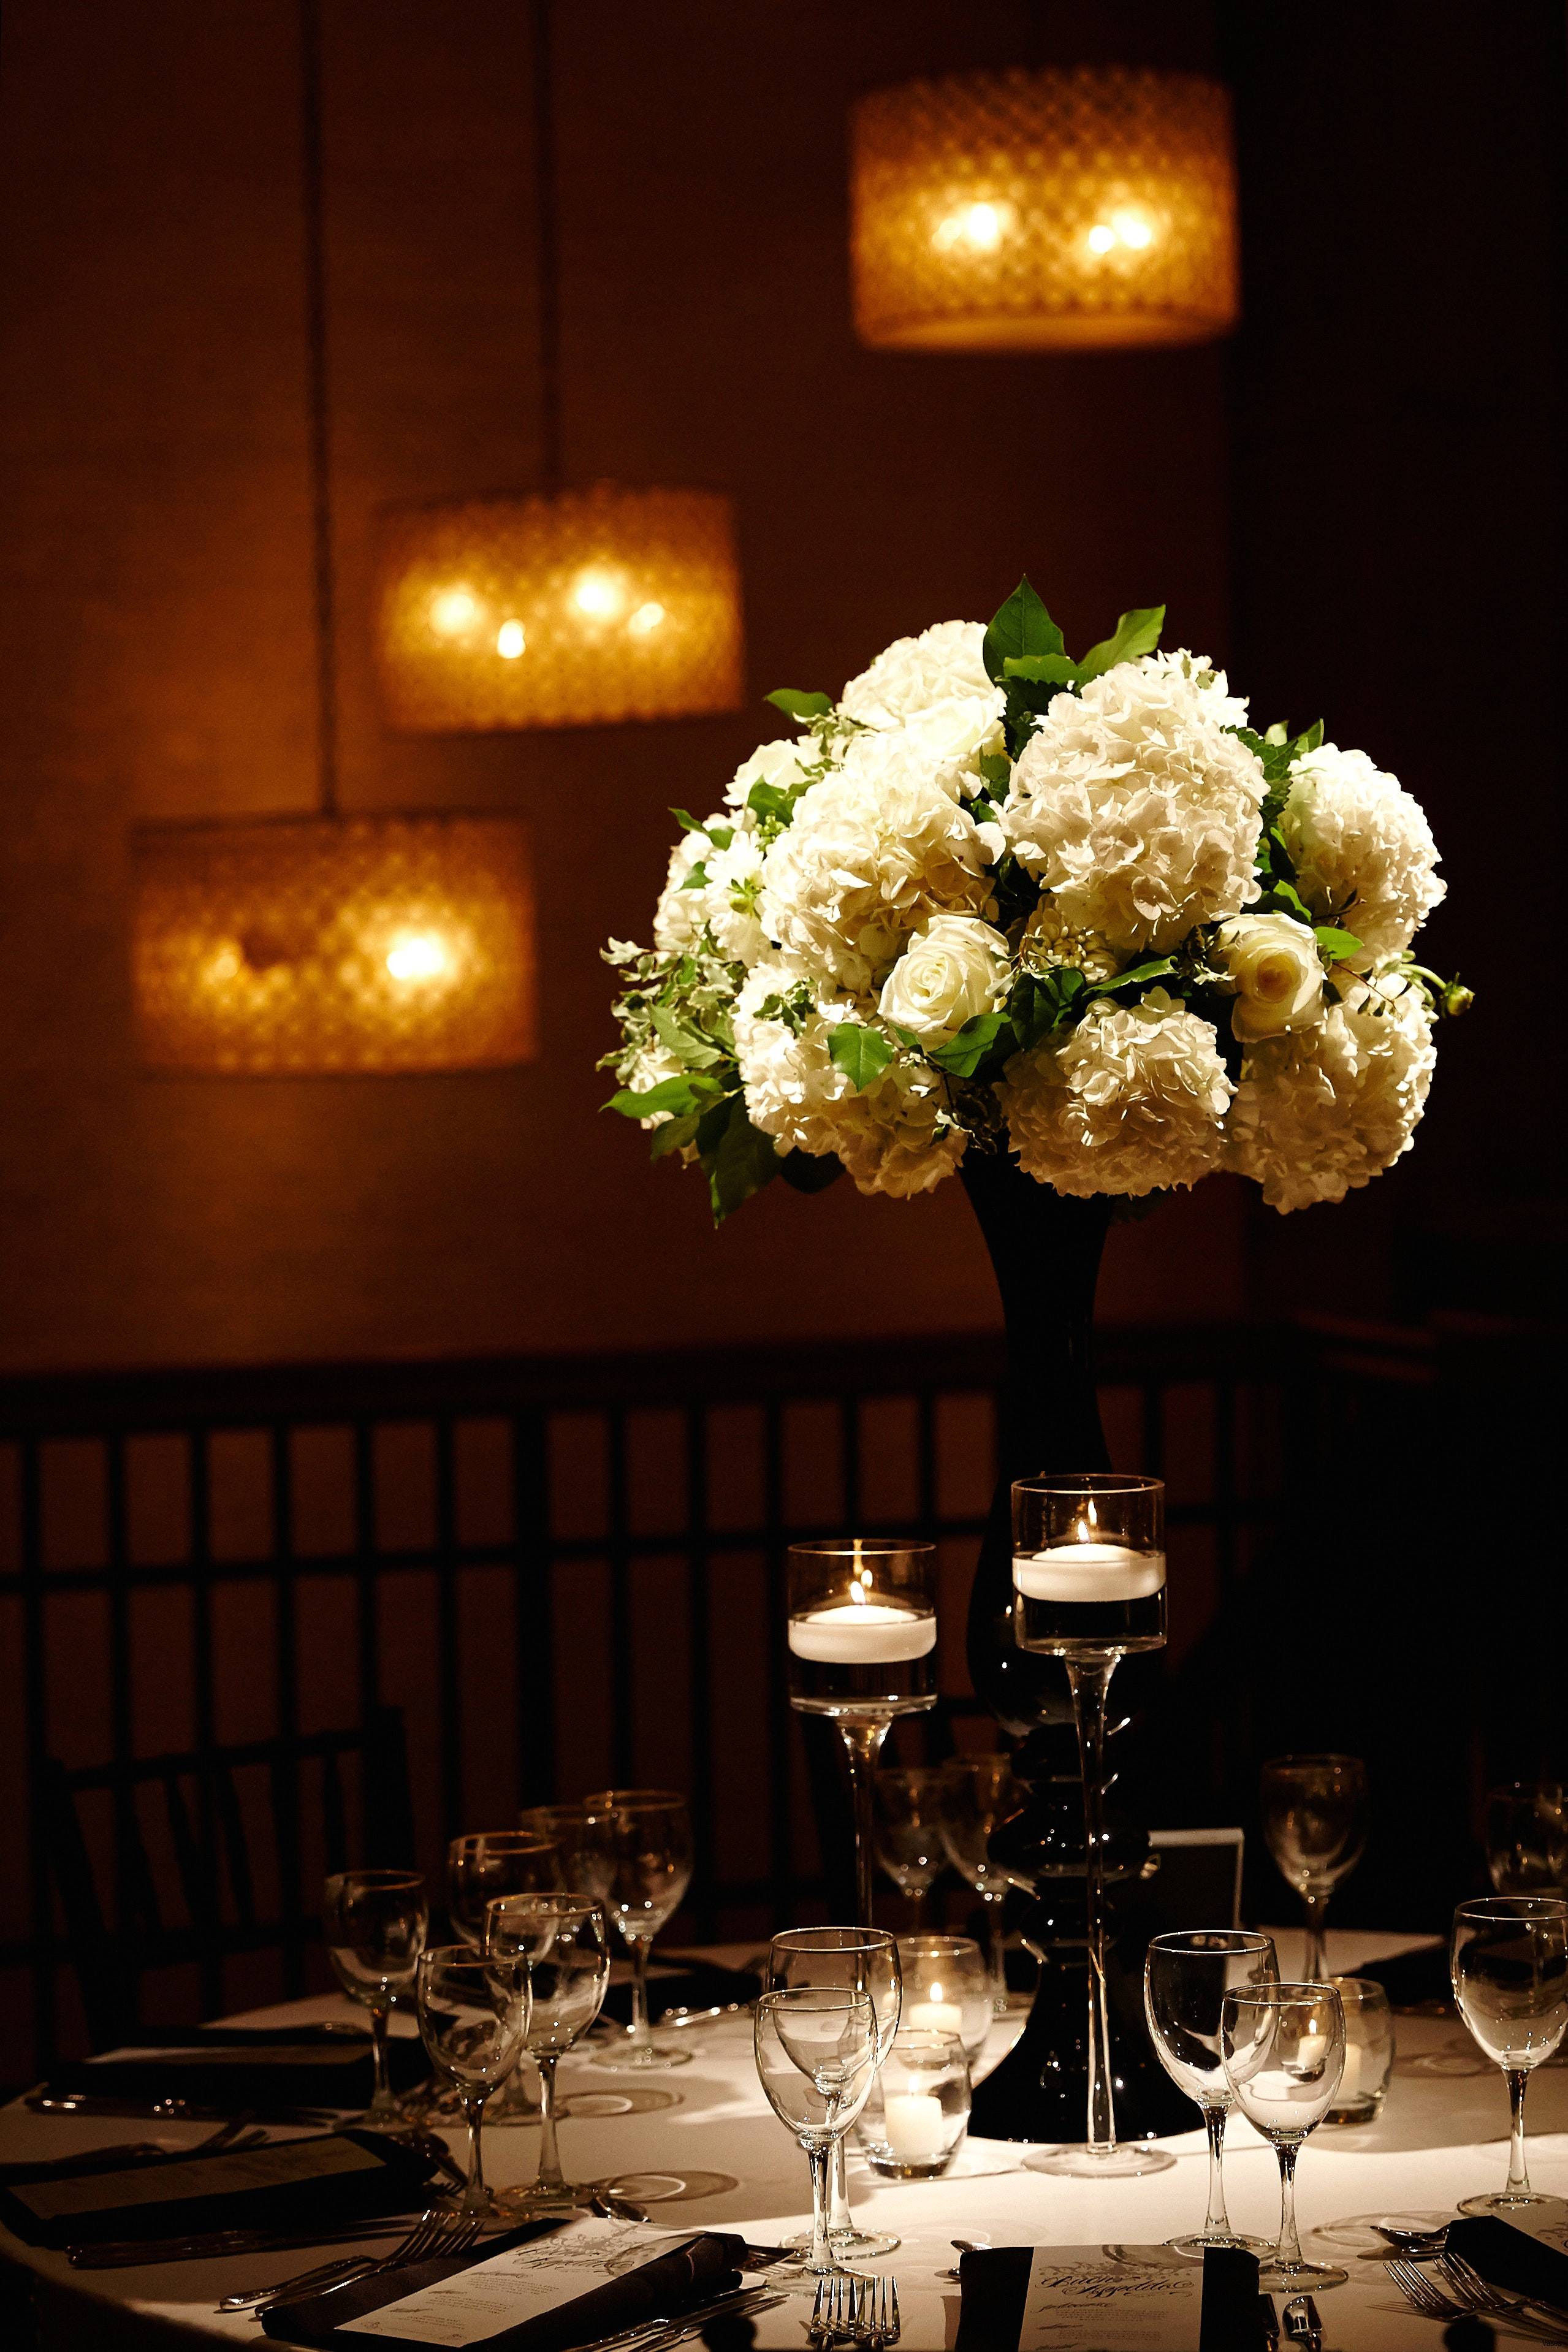 white fish bowl vase of wedding centerpiece with lights greatest il fullxfull h vases black inside wedding centerpiece with lights greatest il fullxfull h vases black vase white flowers zoomi 0d with